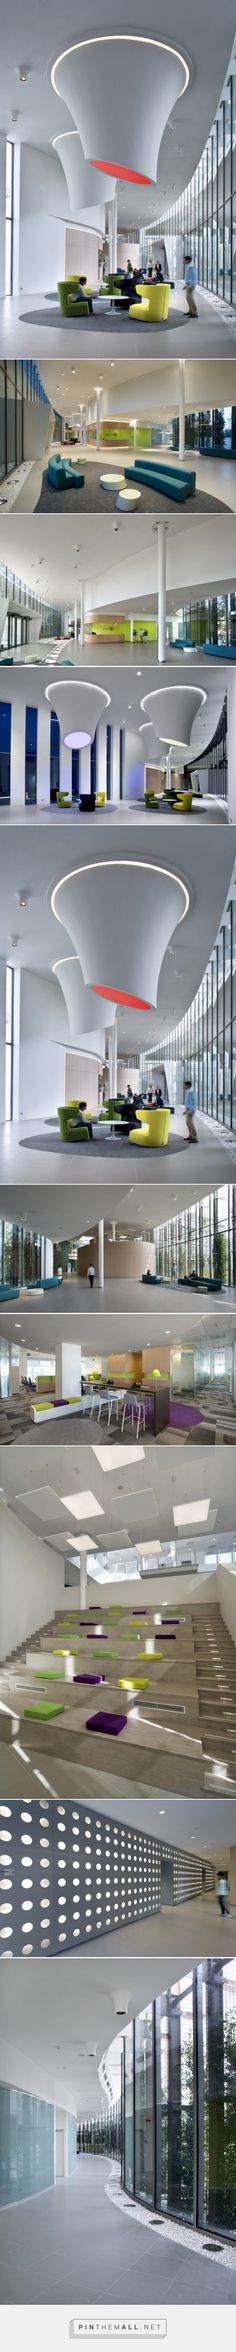 Alcatel-Lucent - Milano Headquarters - Office Snapshots